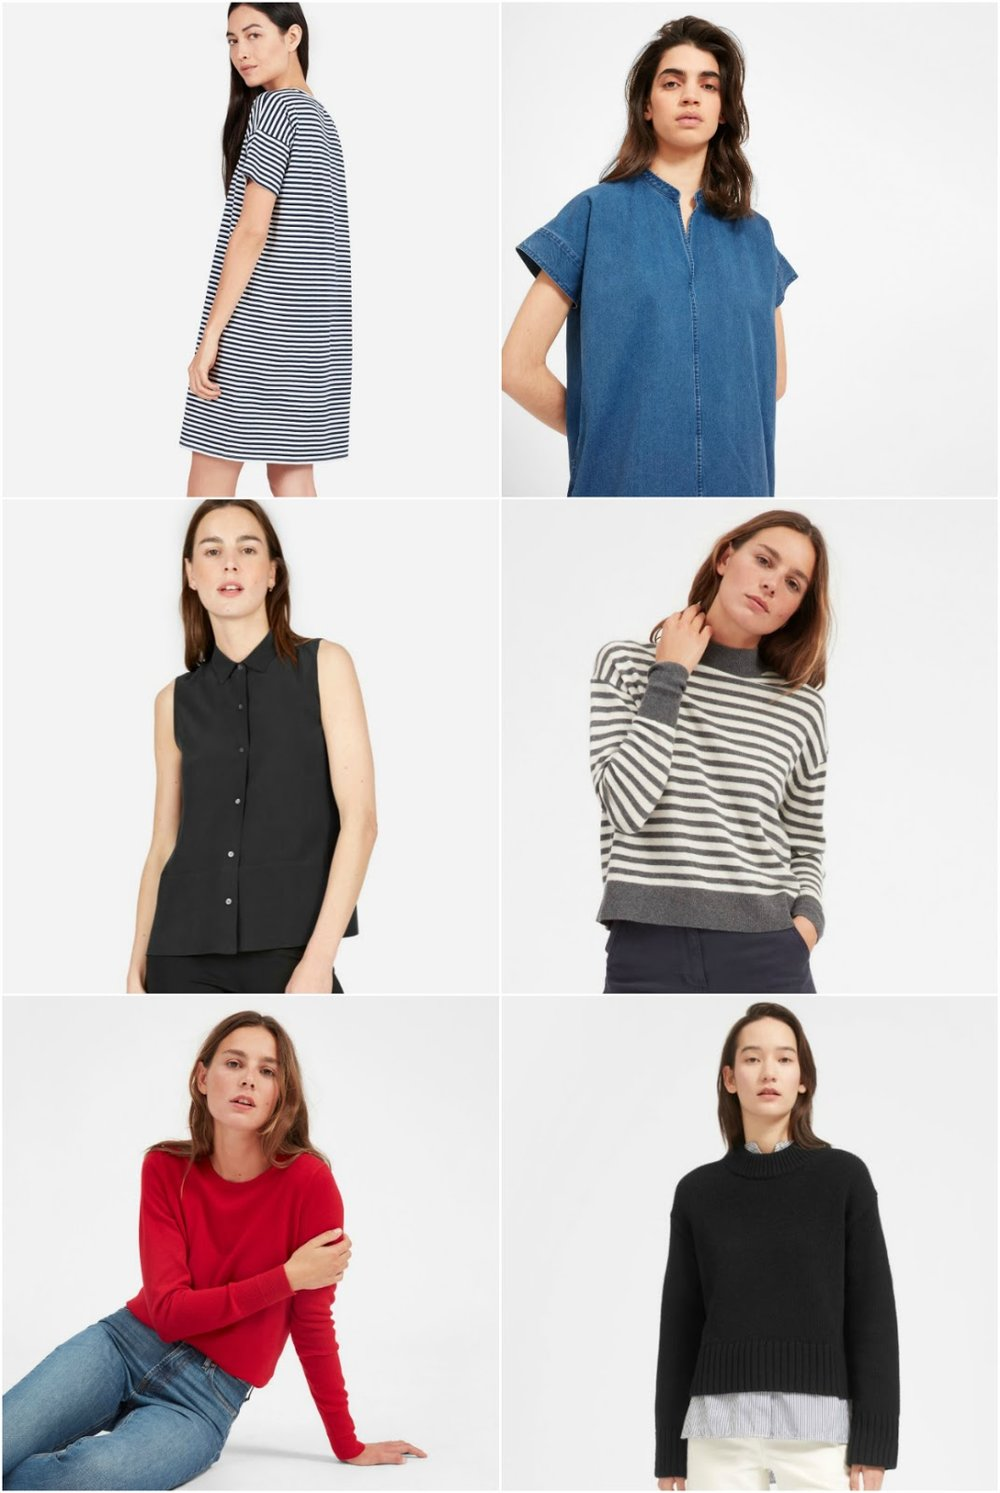 everlane choose what you pay summer 2018 stylewise-blog.com